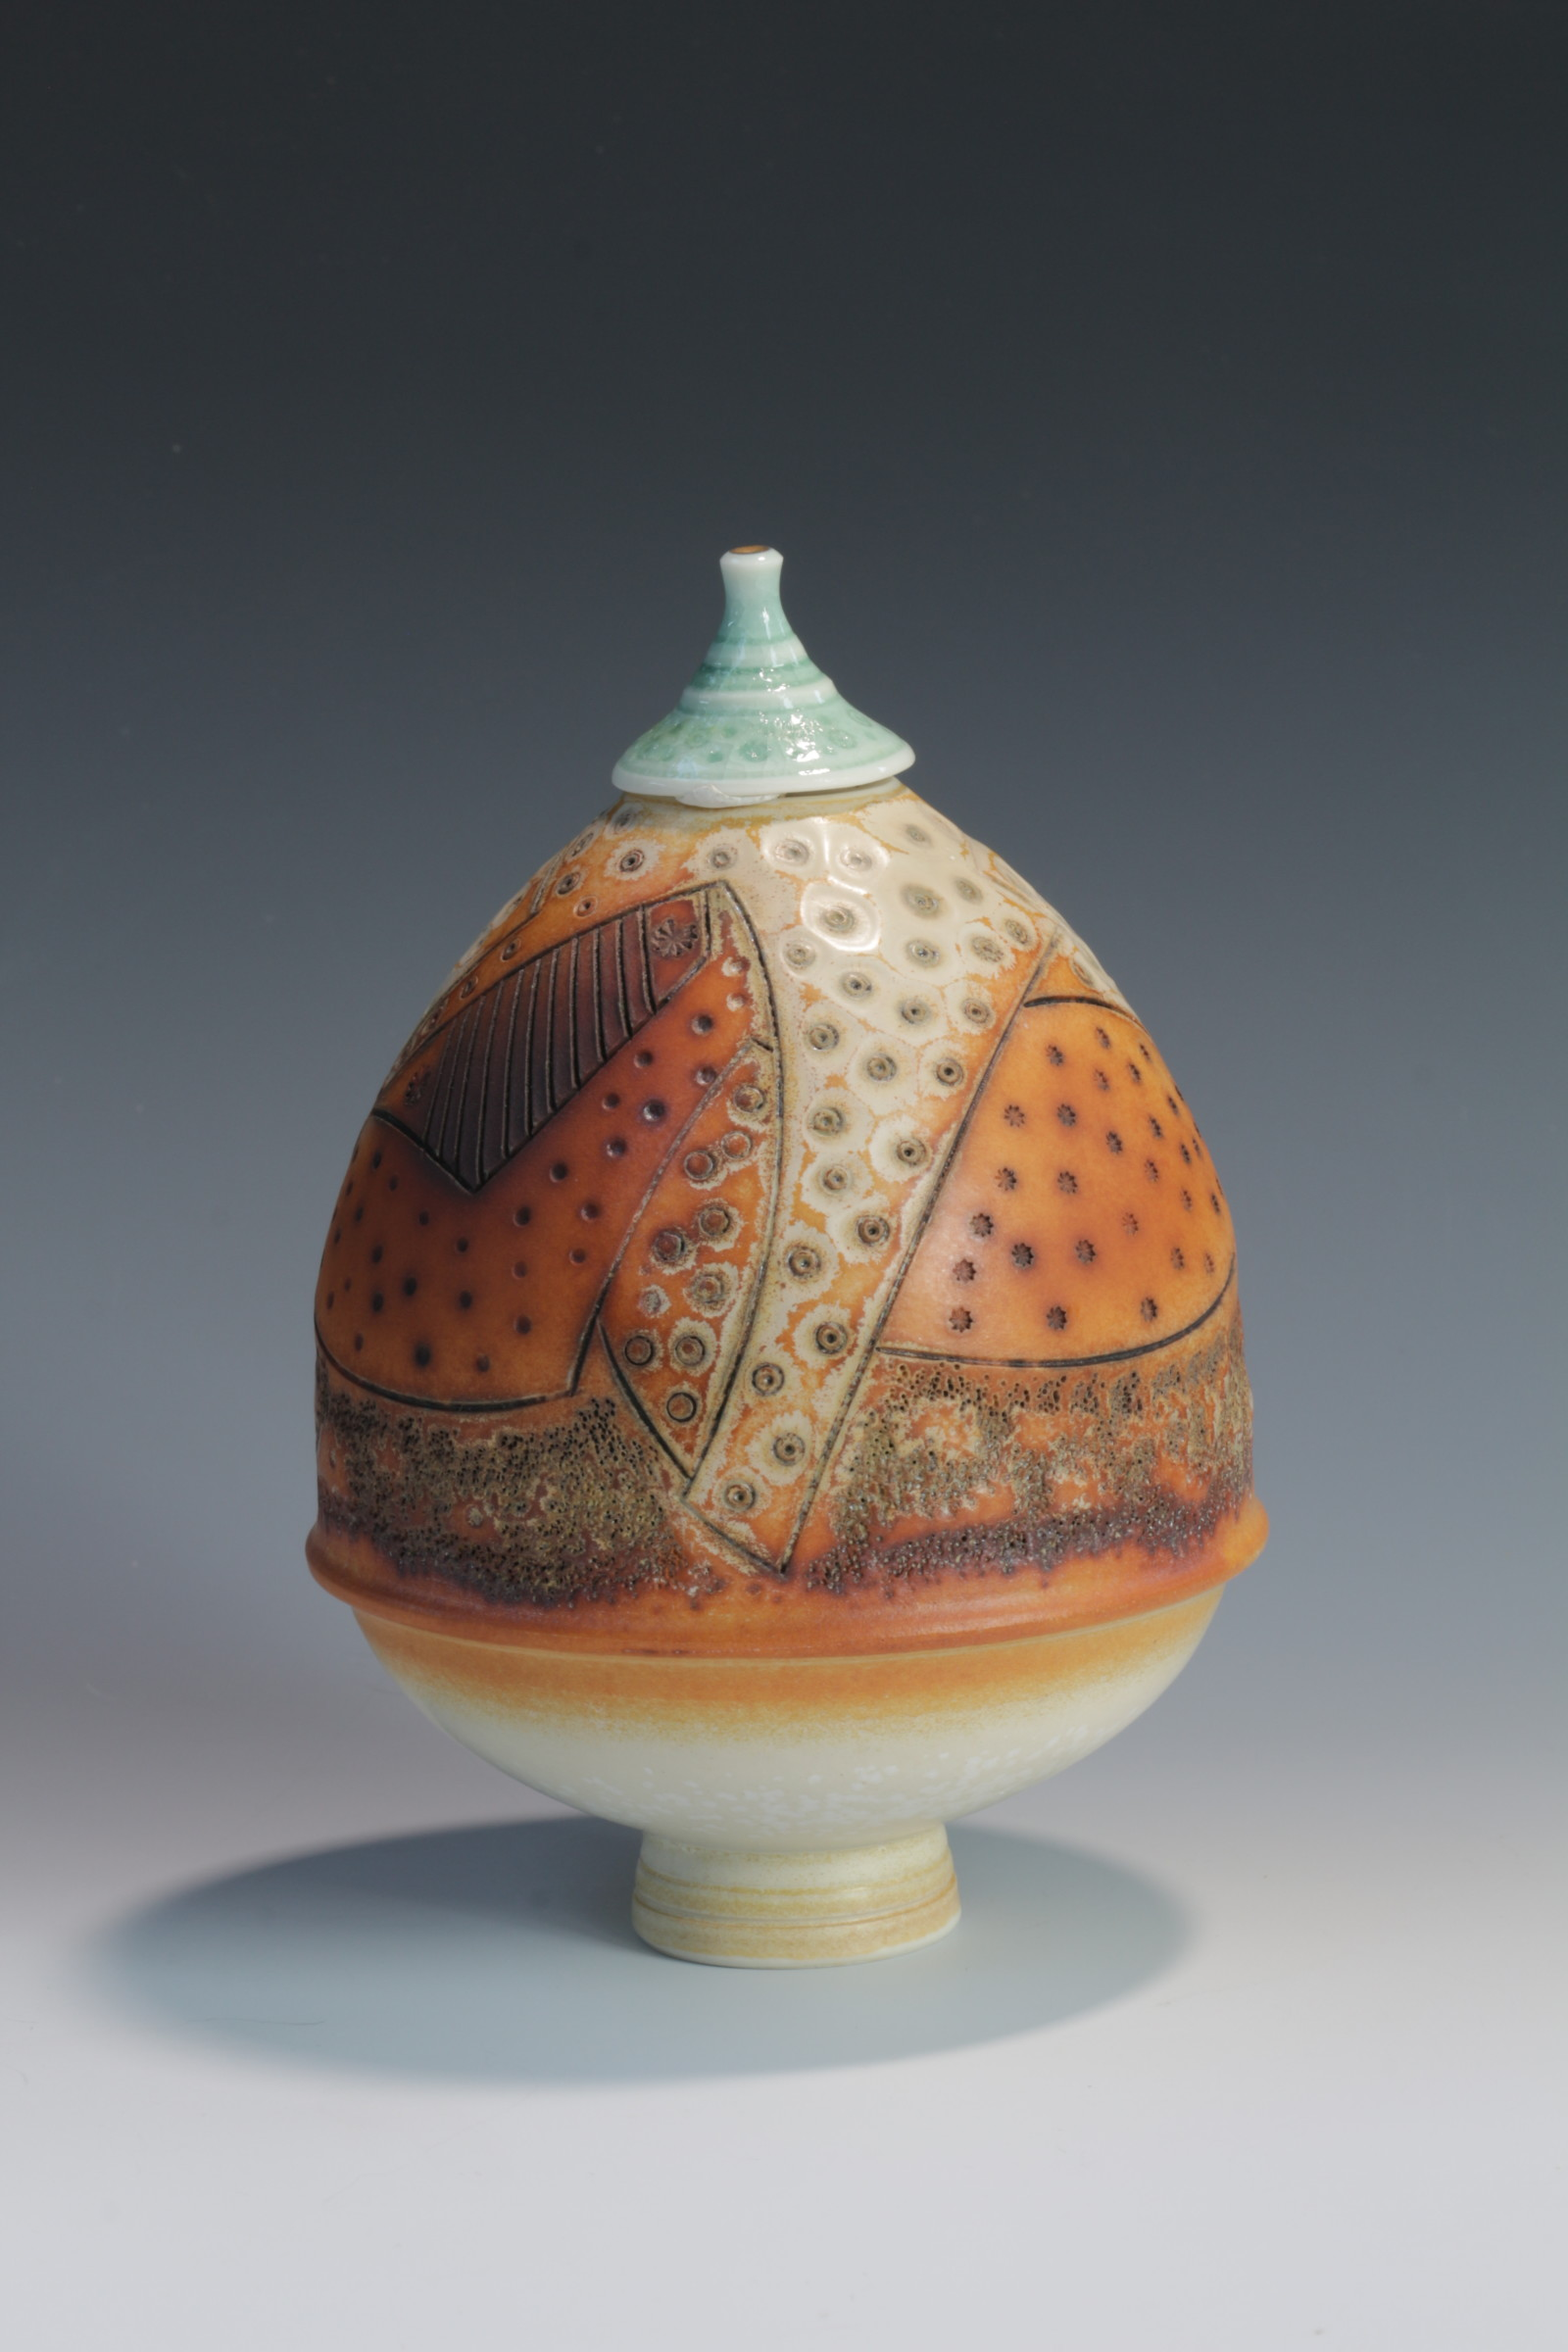 "<span class=""link fancybox-details-link""><a href=""/artists/61-geoffrey-swindell/works/6552-geoffrey-swindell-lidded-pot-2019/"">View Detail Page</a></span><div class=""artist""><strong>Geoffrey Swindell</strong></div> <div class=""title""><em>Lidded Pot</em>, 2019</div> <div class=""signed_and_dated"">Stamped on bottom</div> <div class=""medium"">Porcelain</div><div class=""copyright_line"">Ownart £17.50 x 10 Months 0% APR</div>"